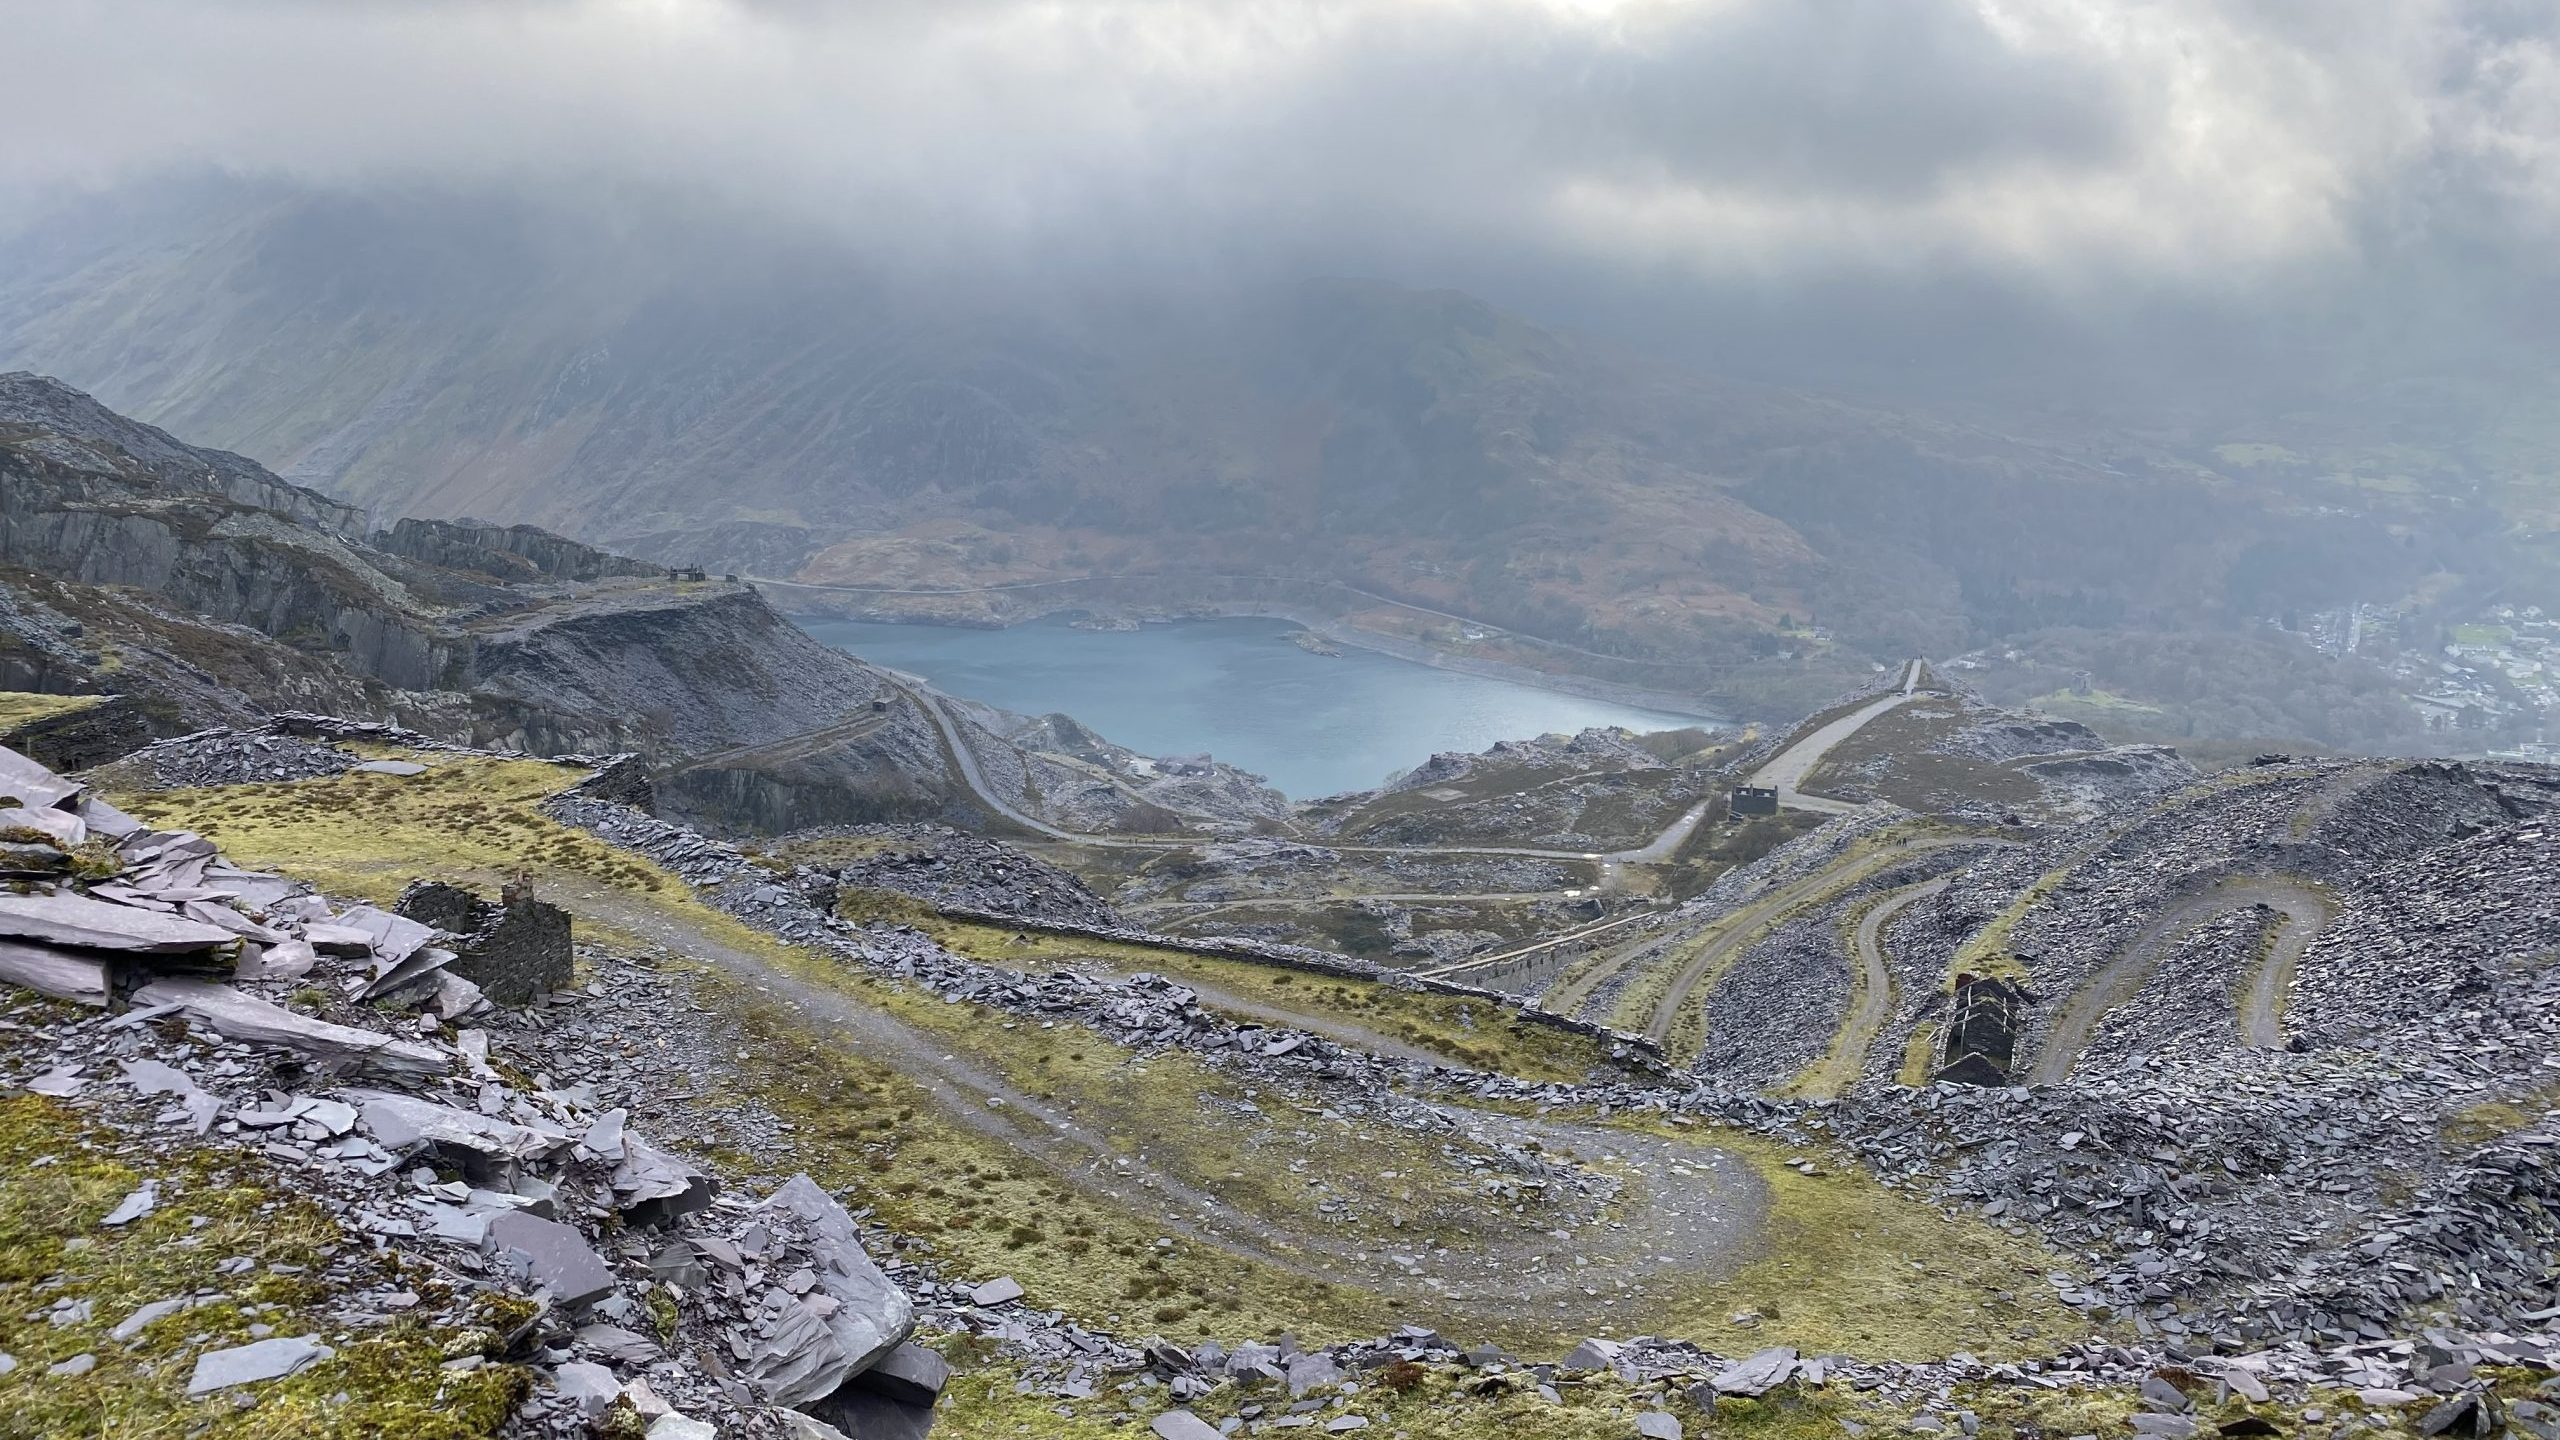 The slate landscape is in the mountains of Snowdonia